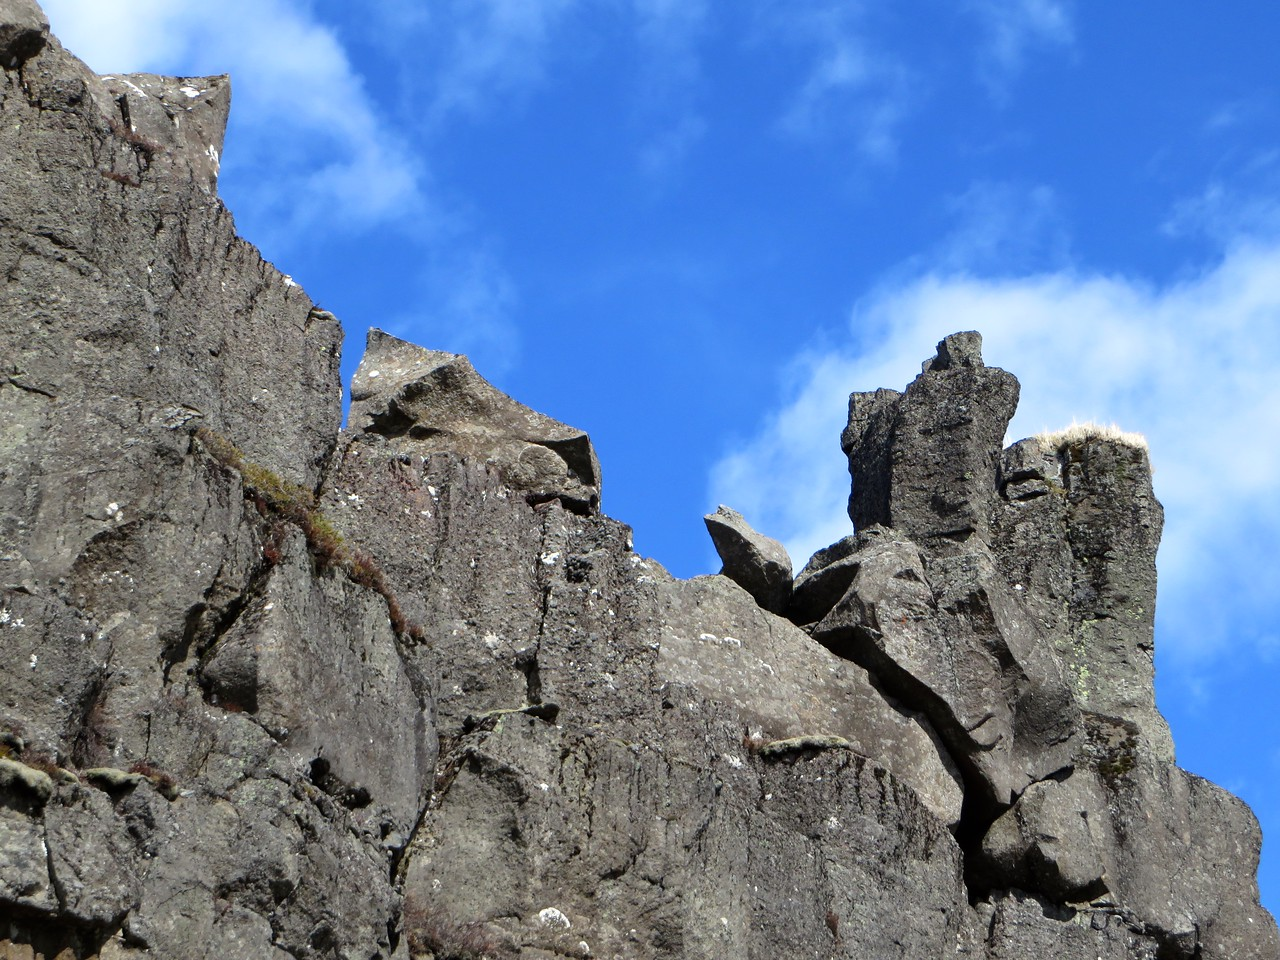 Alpingi Canyon where the 2 tectonic plates meet